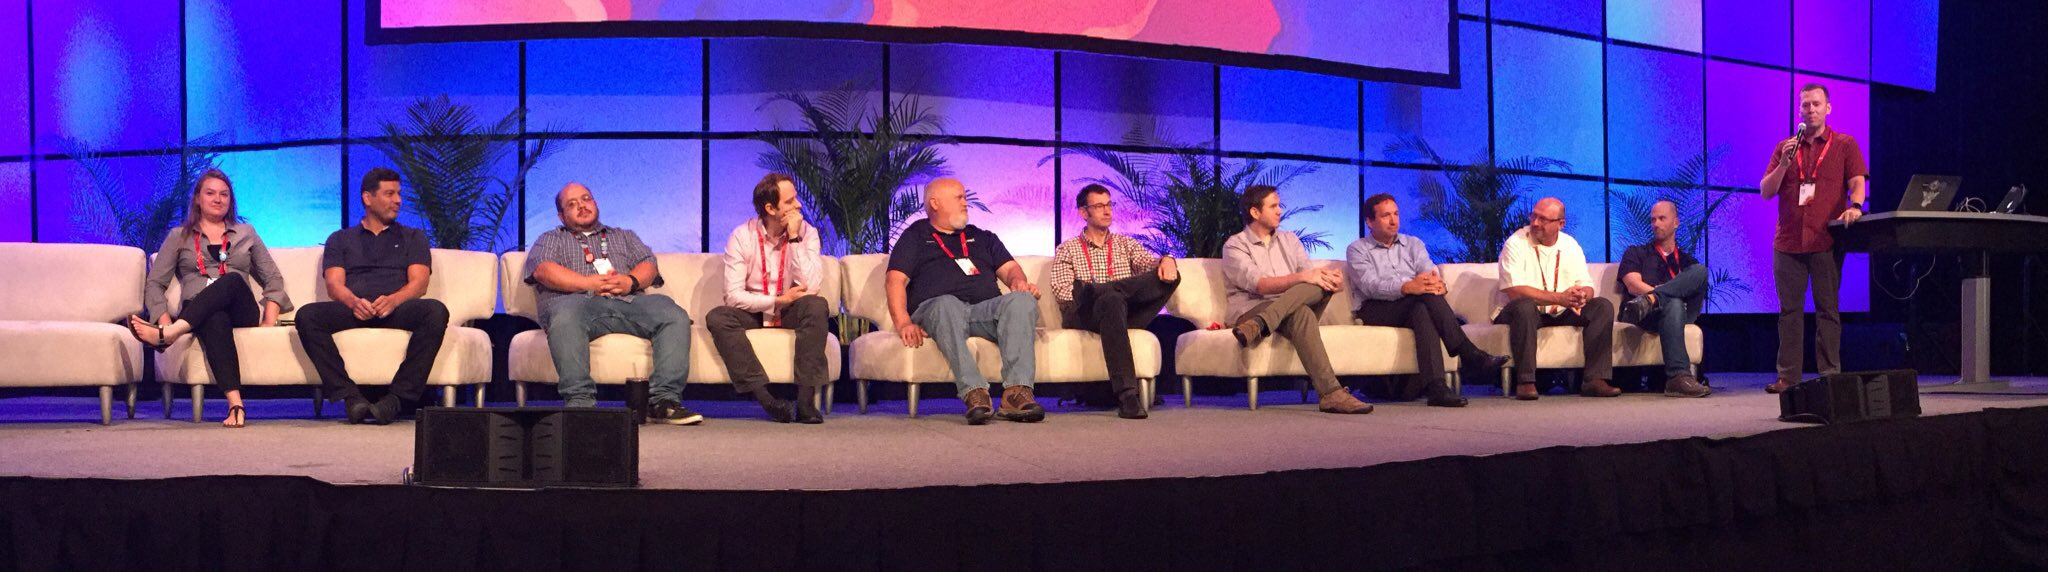 Esri User Conference Highlights: ArcGIS Pro Panel Discussion